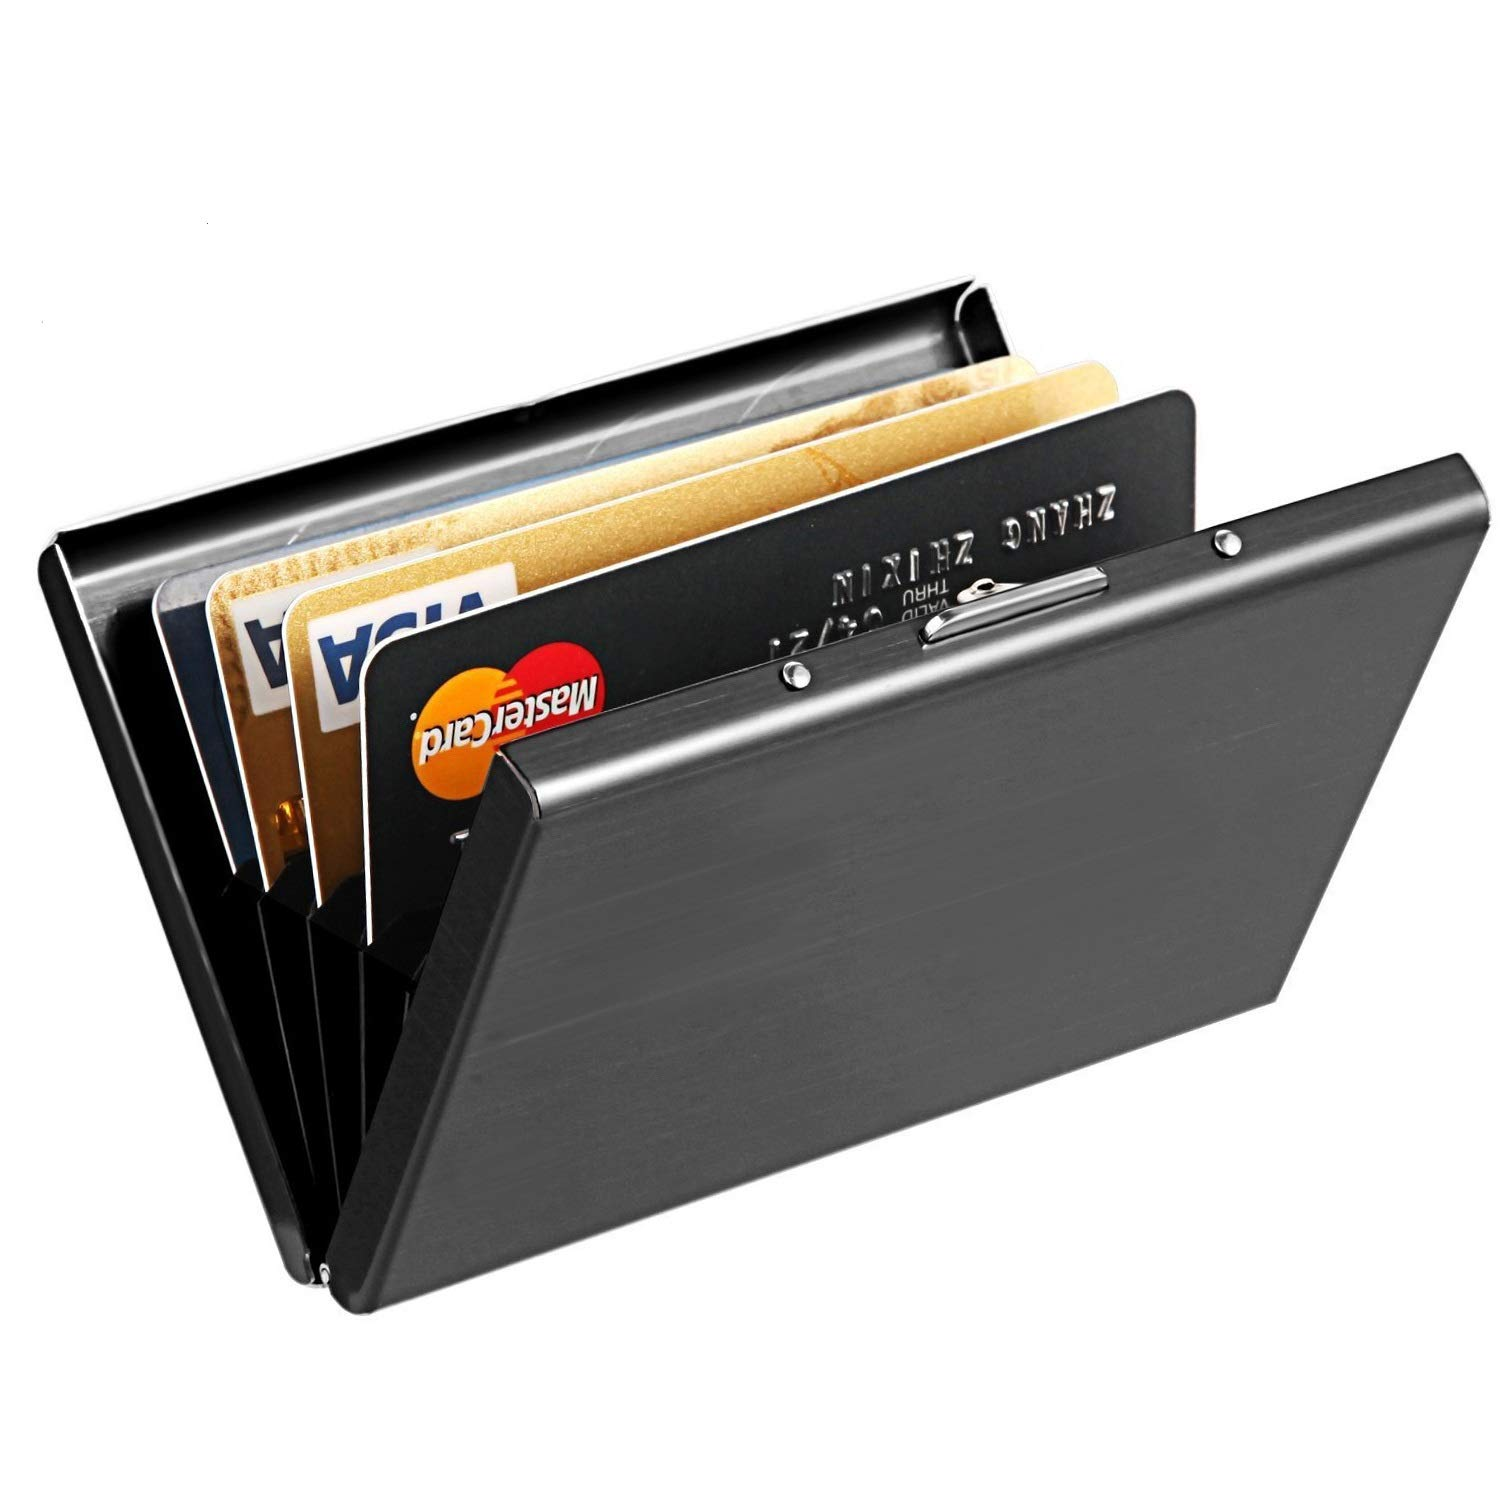 MaxGear RFID Blocking Credit Card Holder Credit Card Case Credit Card Protector Cards holder Waterproof Credit Card Wallet for Men or Women Metal Credit Card Case Silver Luggage-Card-Case-M02-Black